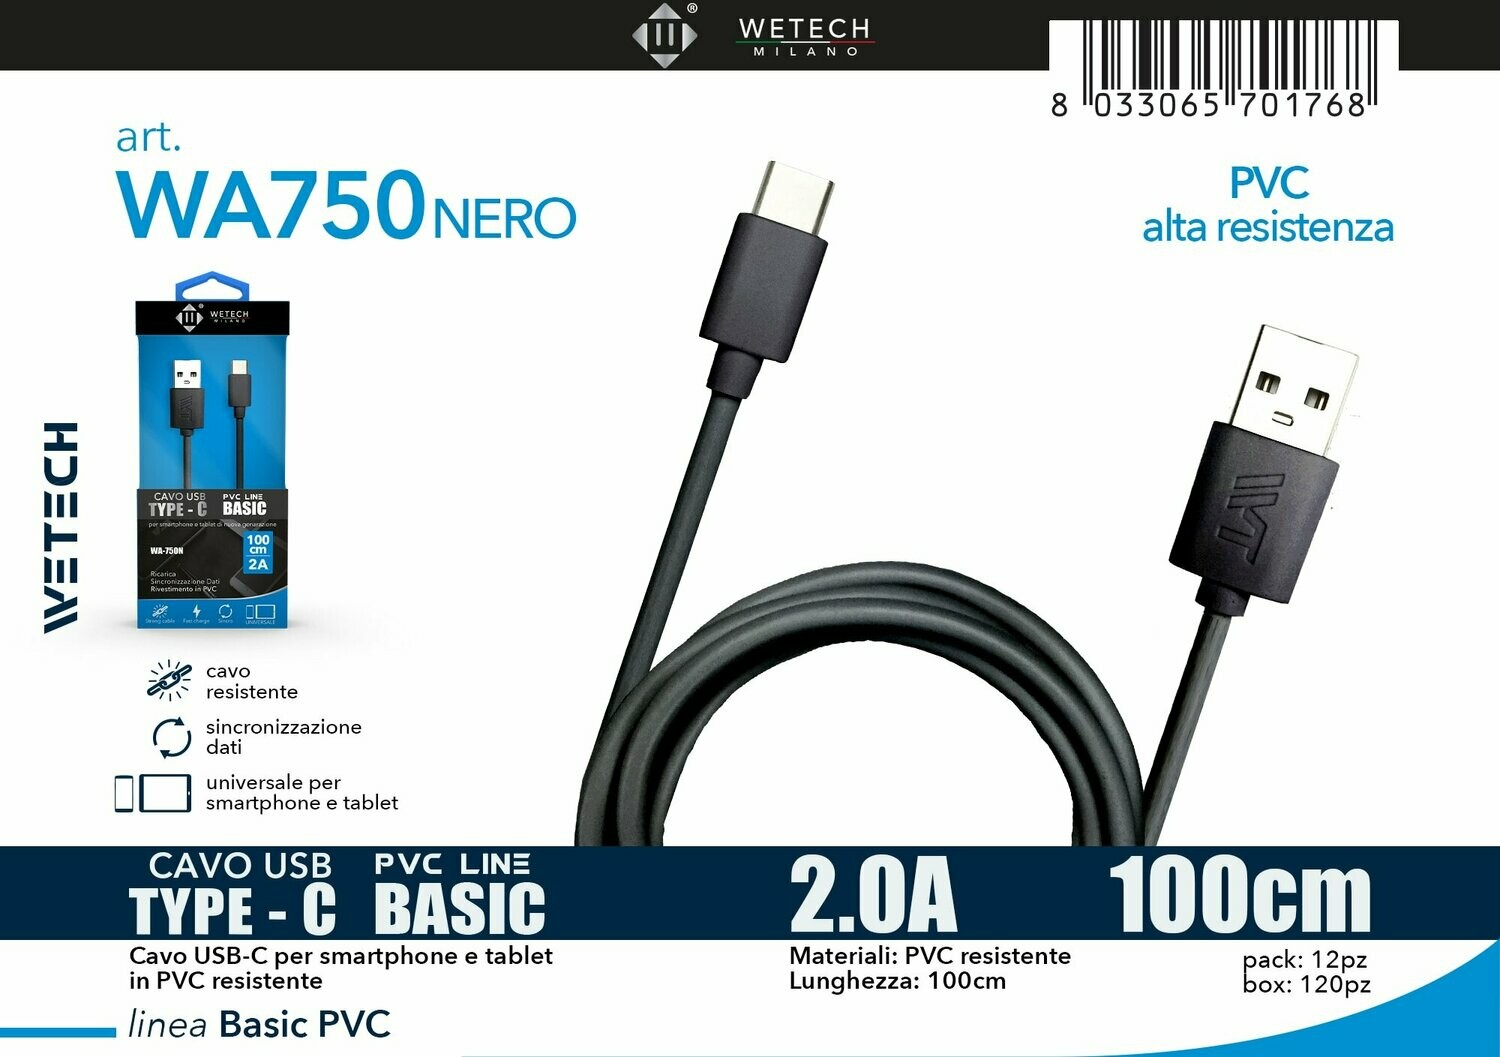 Cavo USB-C BASIC in PVC 2.0A 100cm